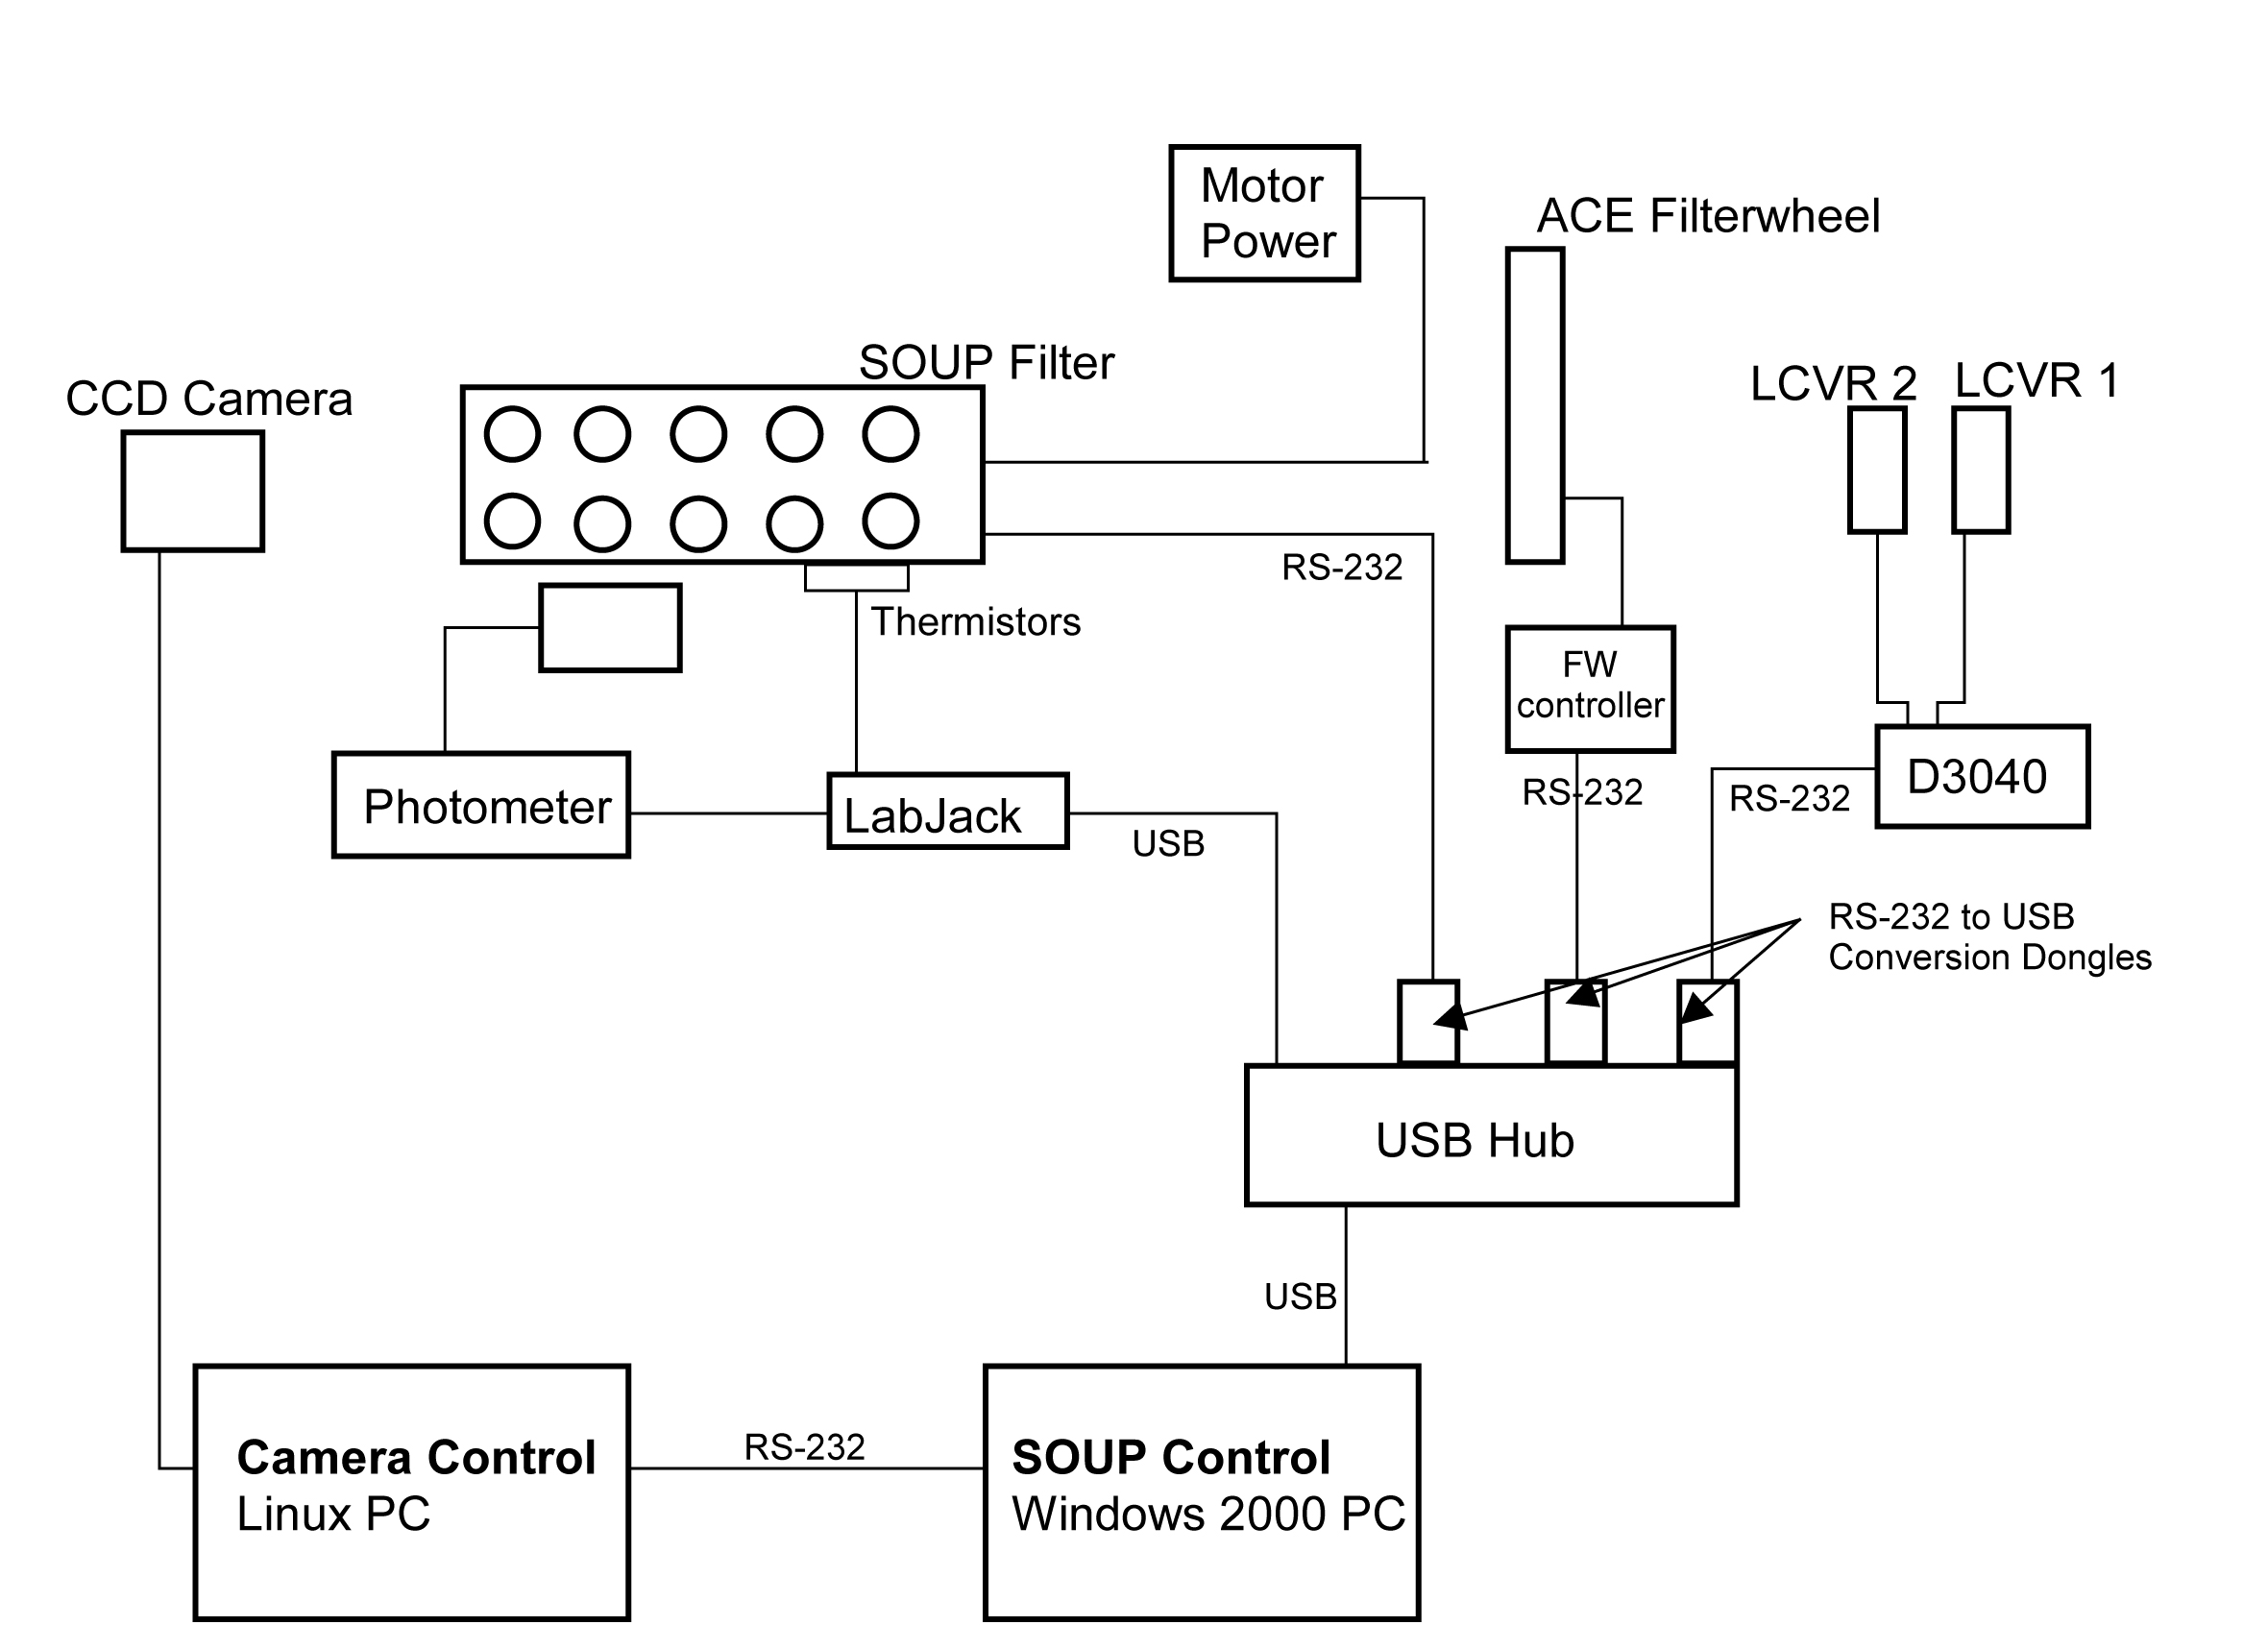 Functional Block Diagram Soup Circuit Connection Diagrams Tuneable Filter User S Manual Rh Isf Astro Su Se Explained